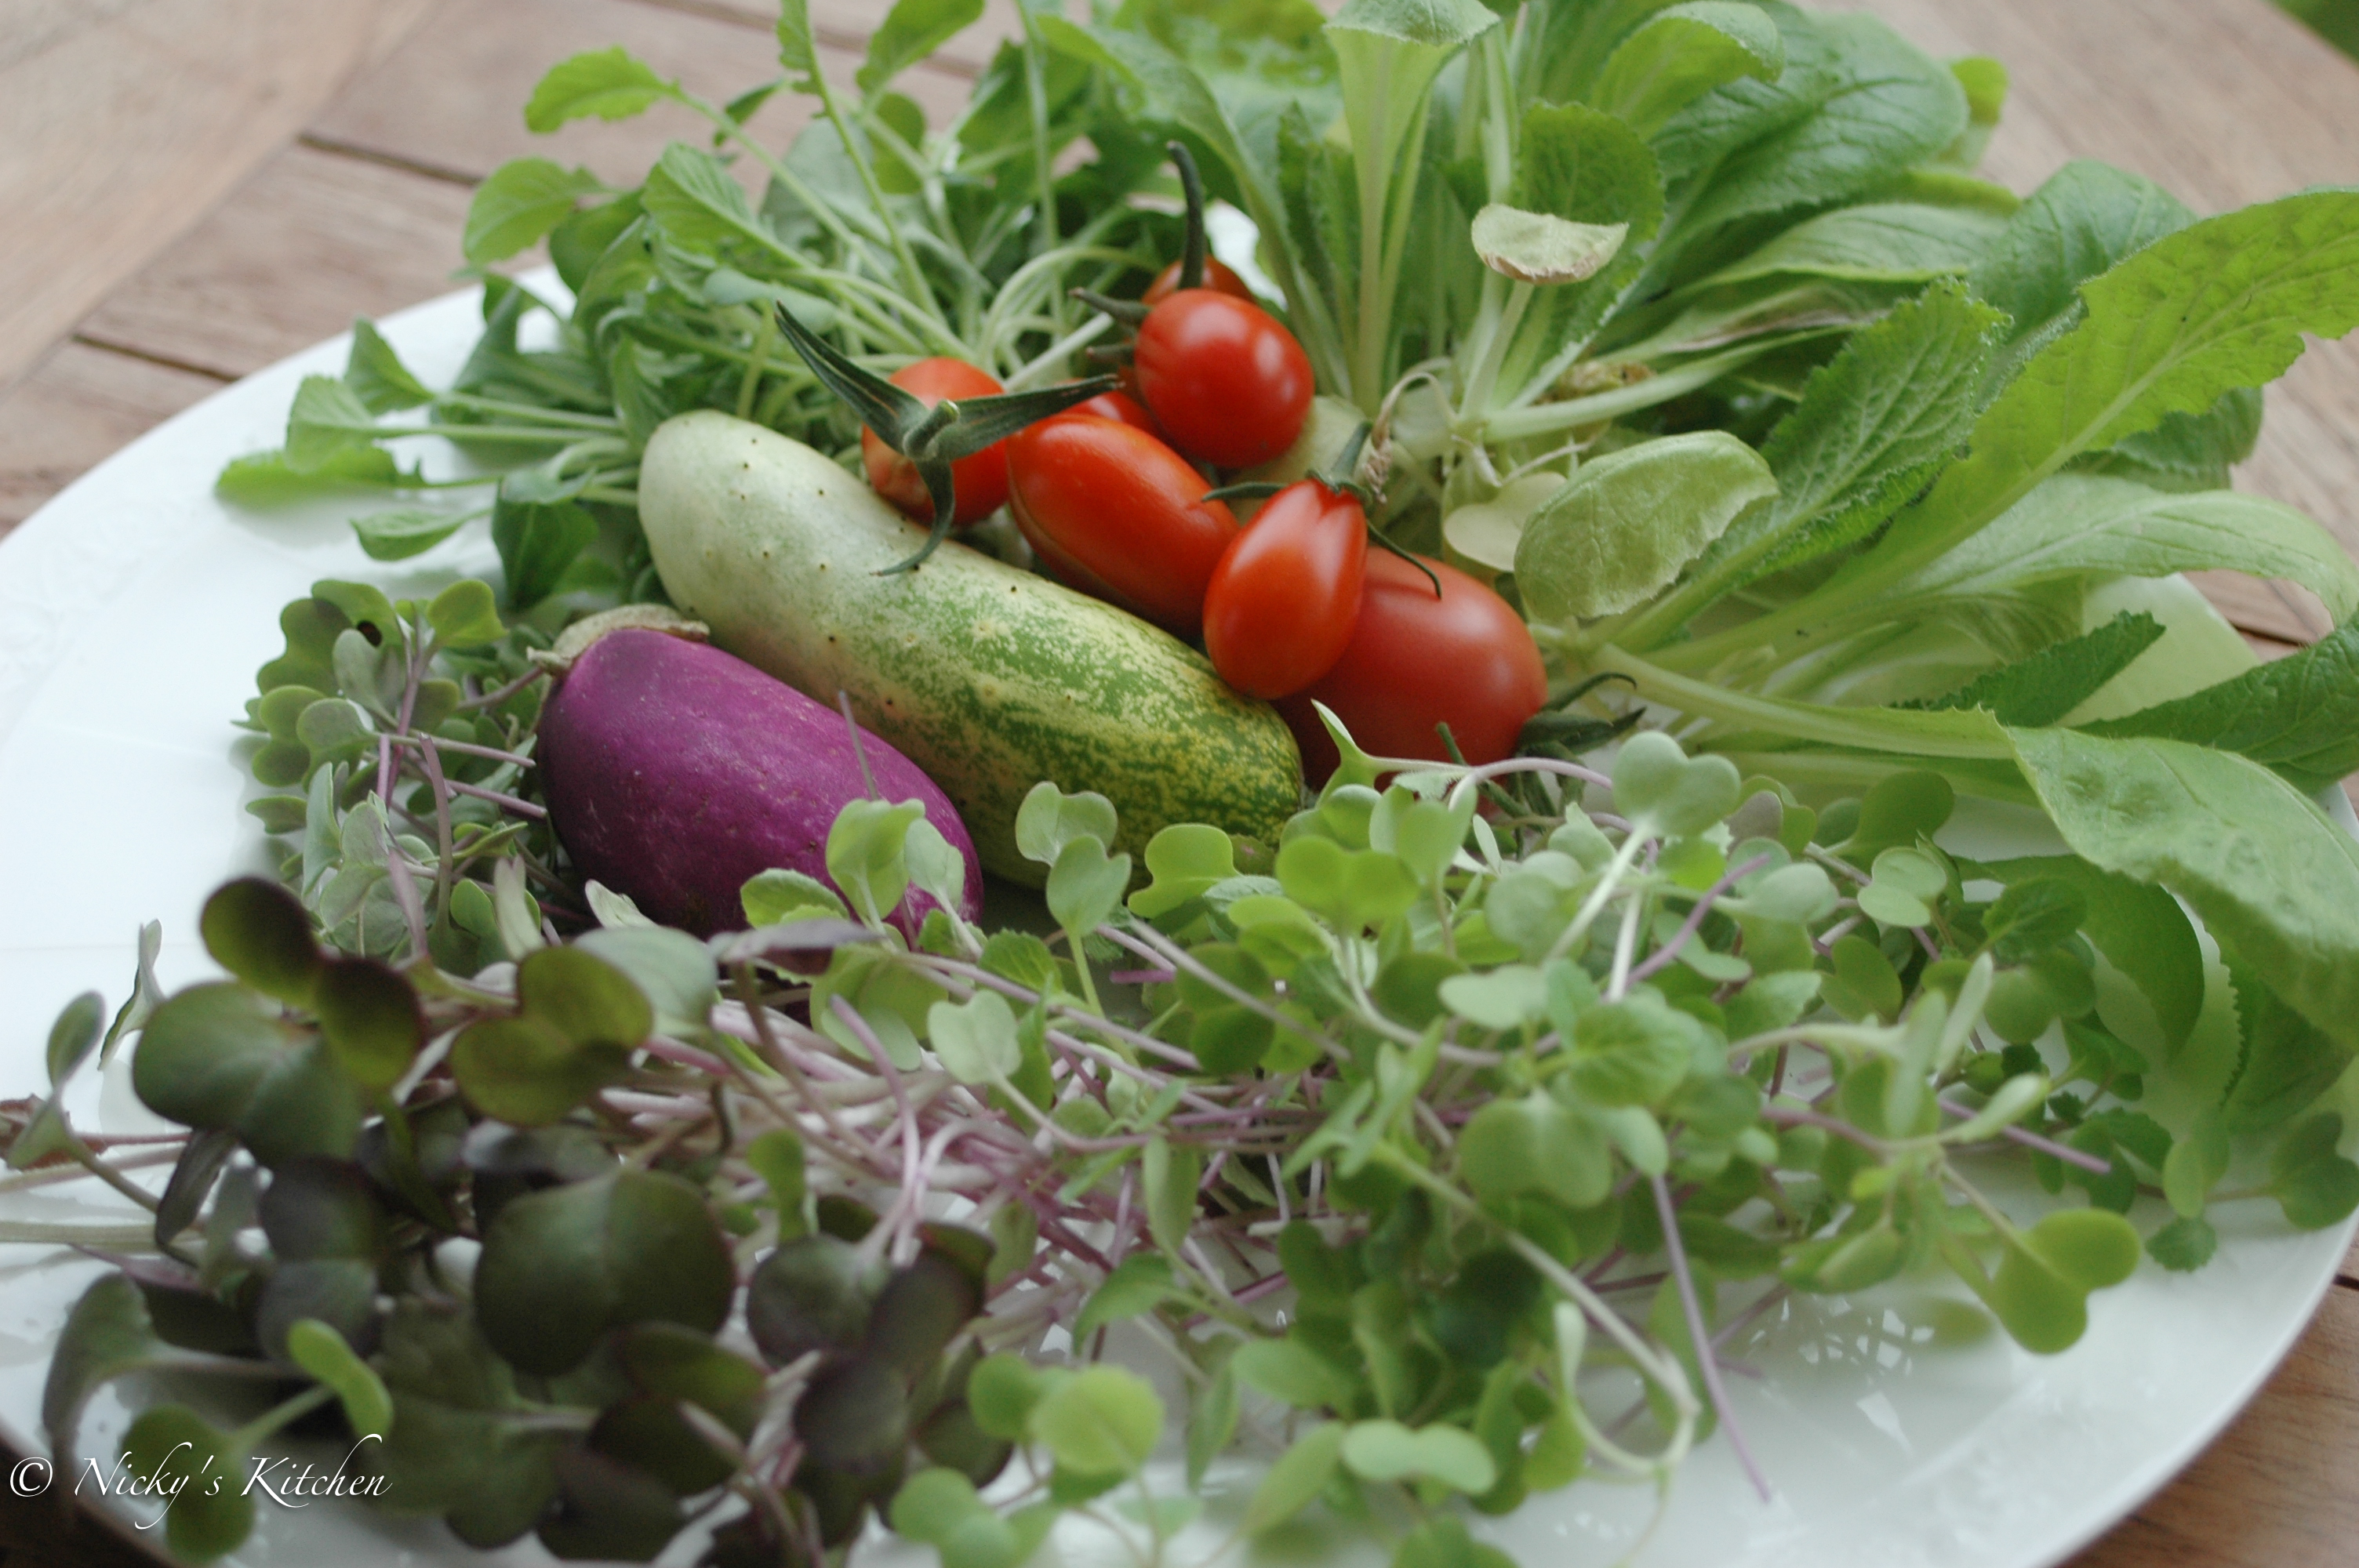 Balcony garden journal 3 – harvest time!